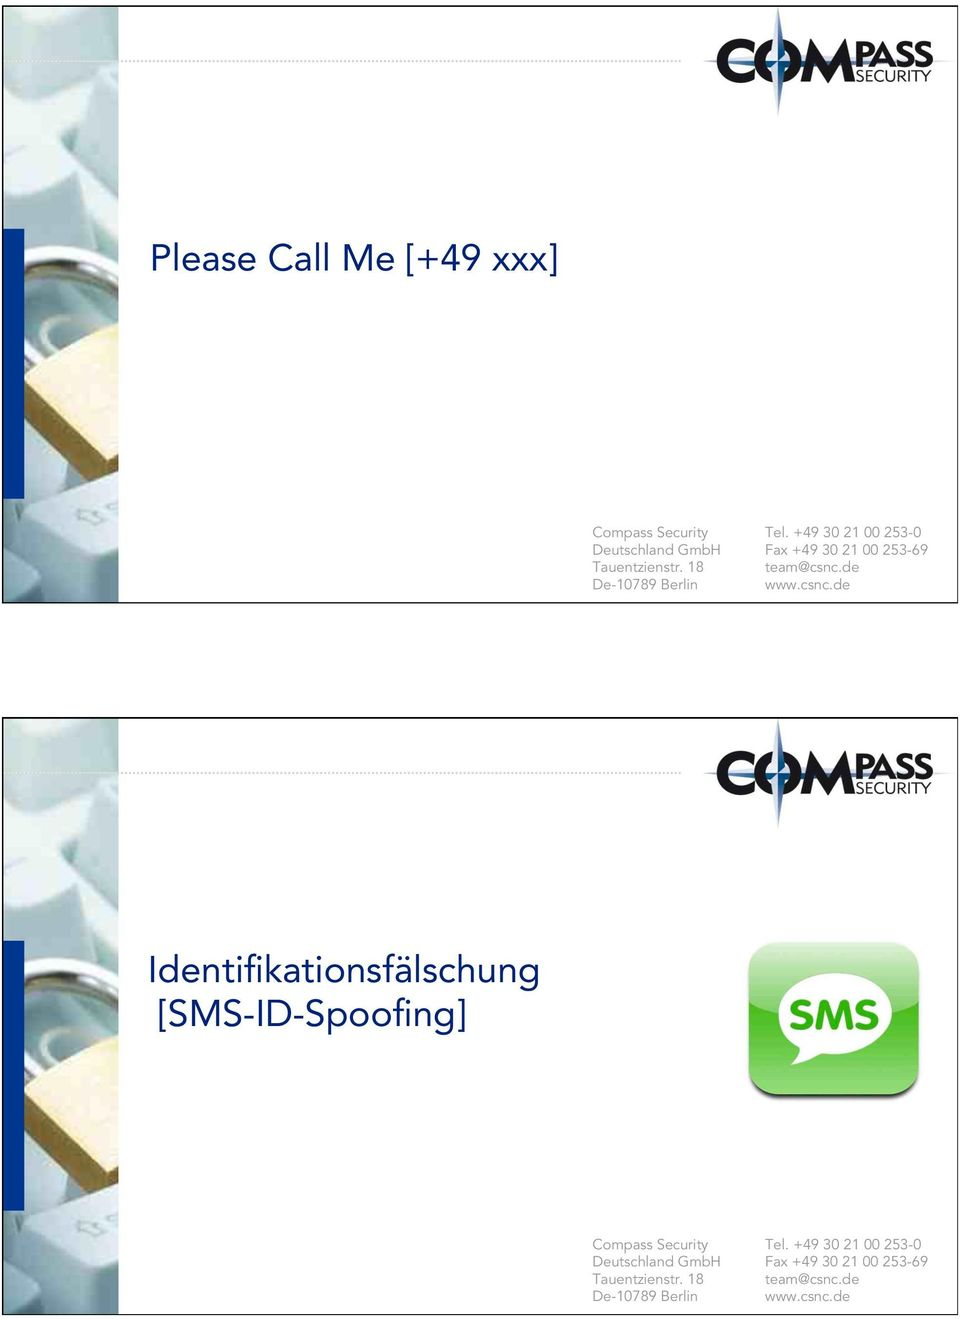 csnc.de Identifikationsfälschung [SMS-ID-Spoofing] Compass Security Deutschland GmbH